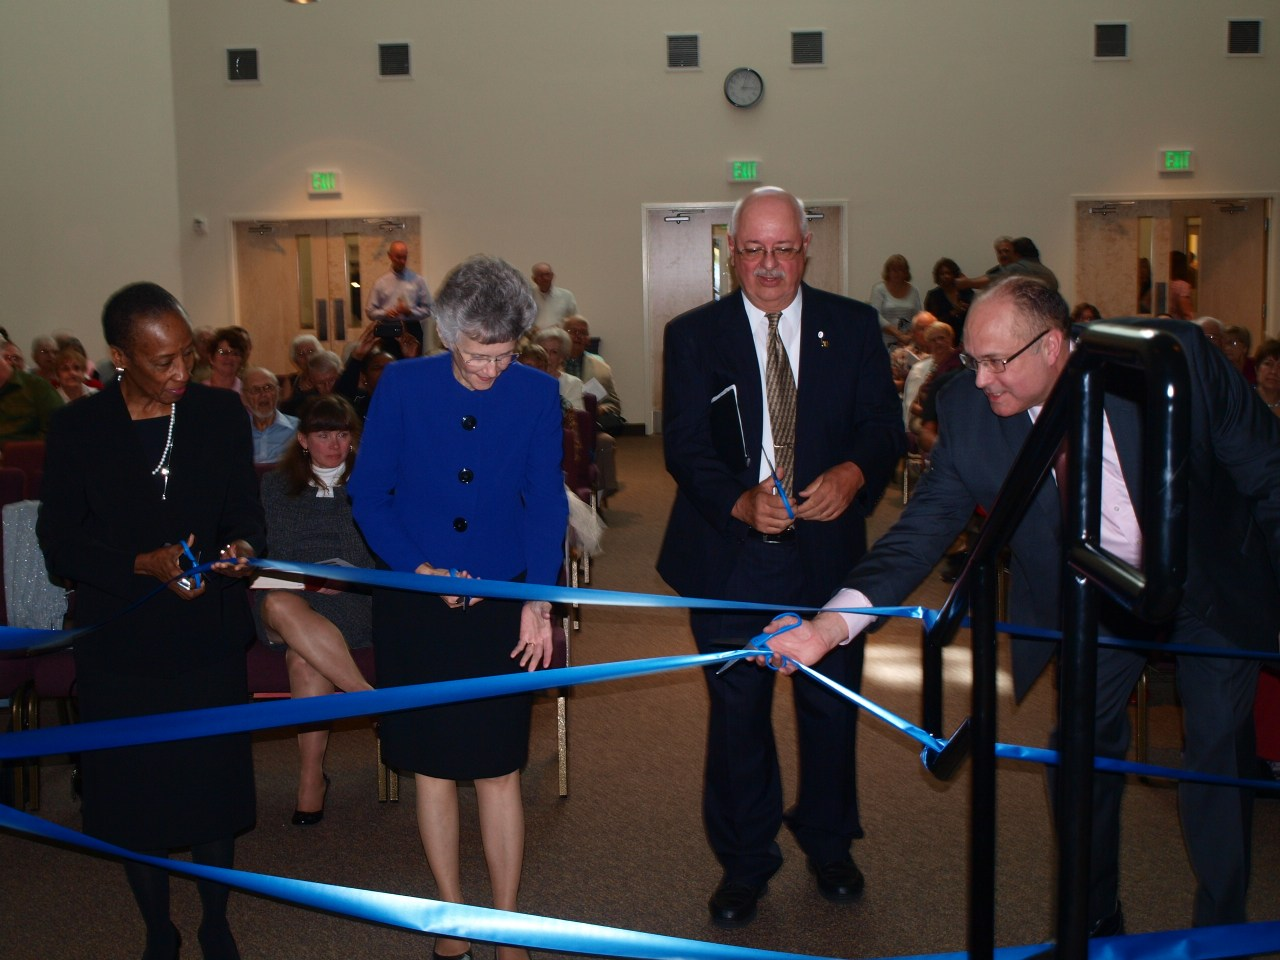 Our Grand Opening Celebration/Dedication